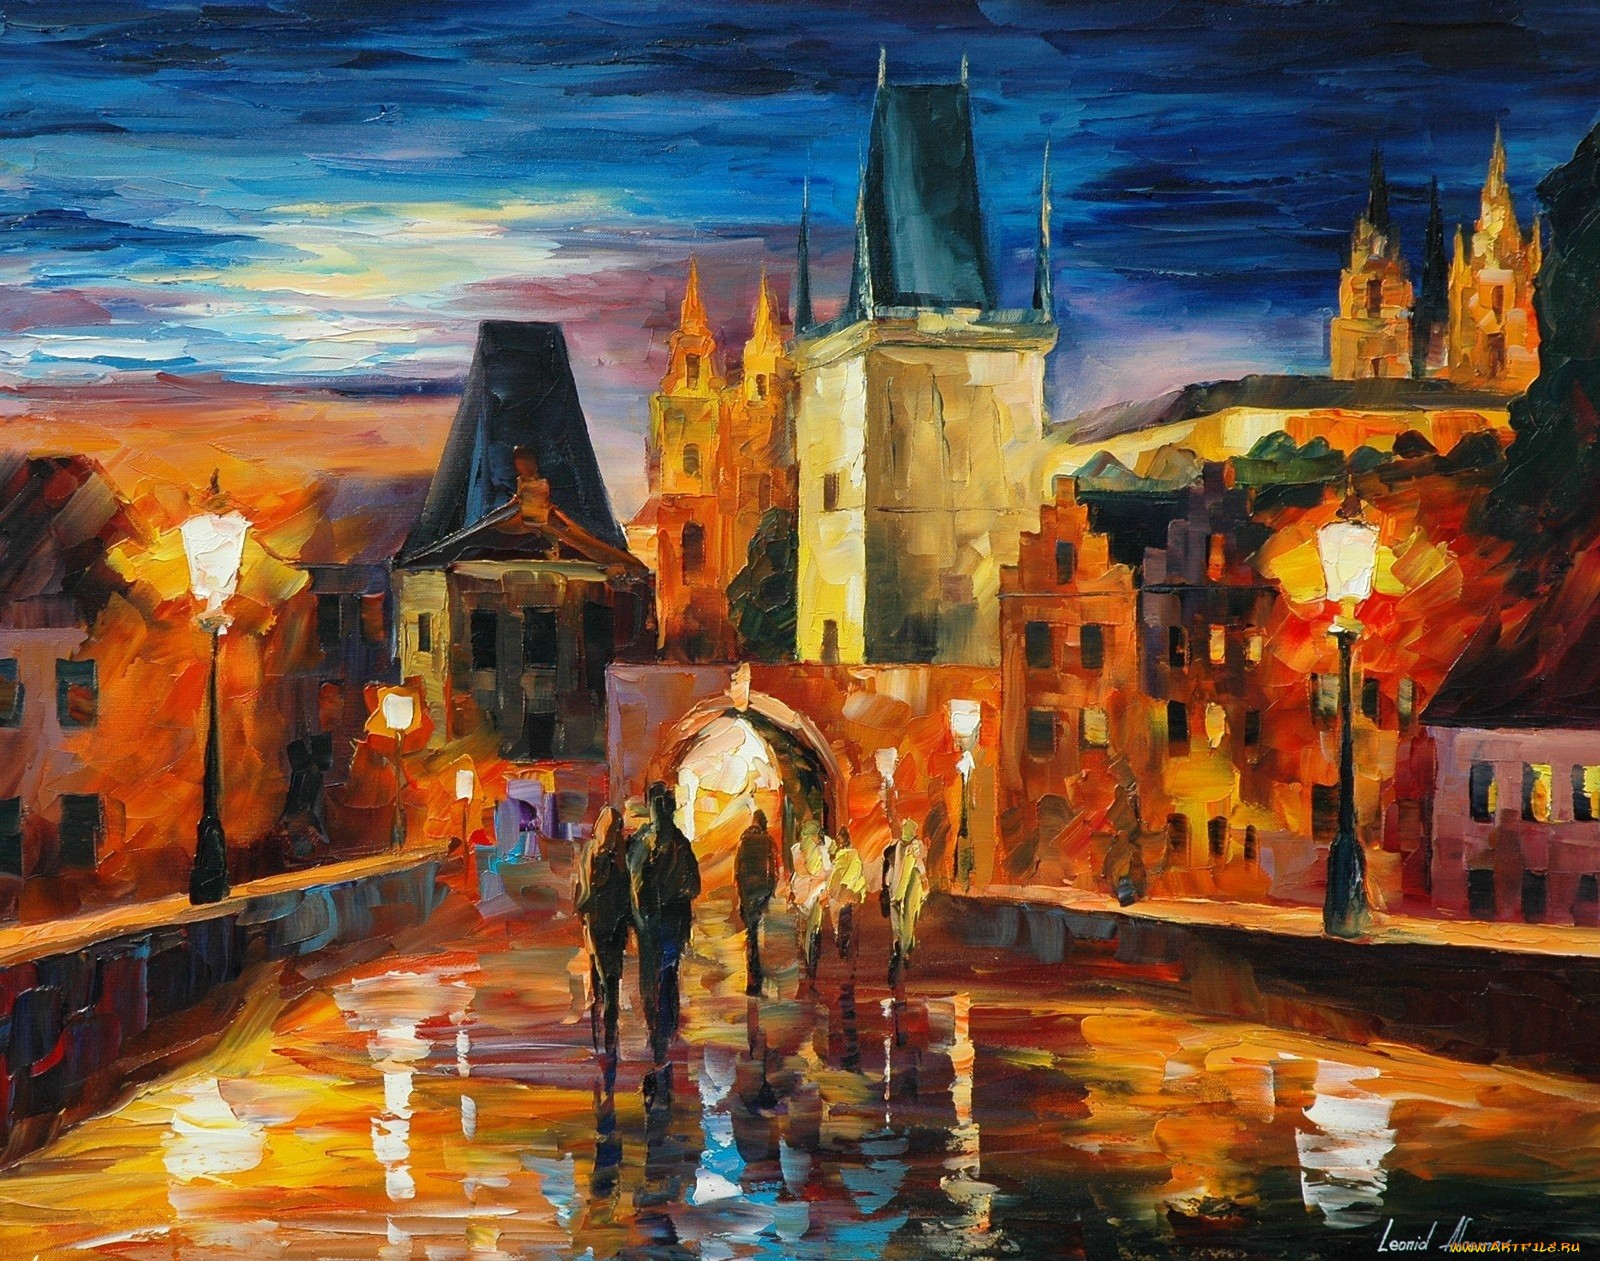 Get 100 handpainted oil paintings on canvas Find artwork for sale by your favorite artists here with WORLDWIDE SHIPPING free in the US!